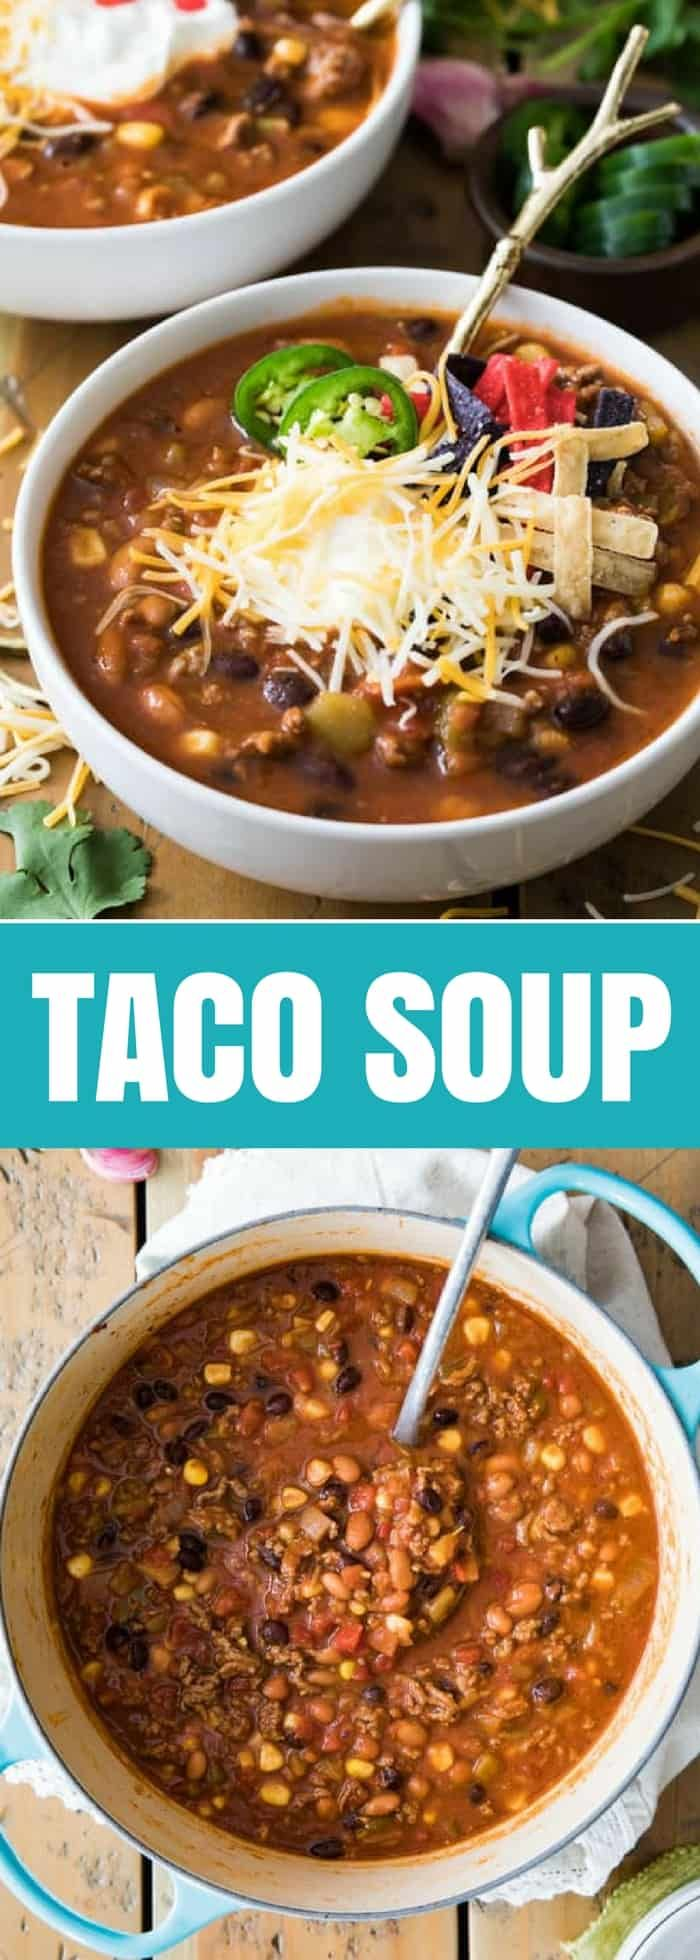 161 best Soup Recipes images on Pinterest | Comfort foods, Cooking ...